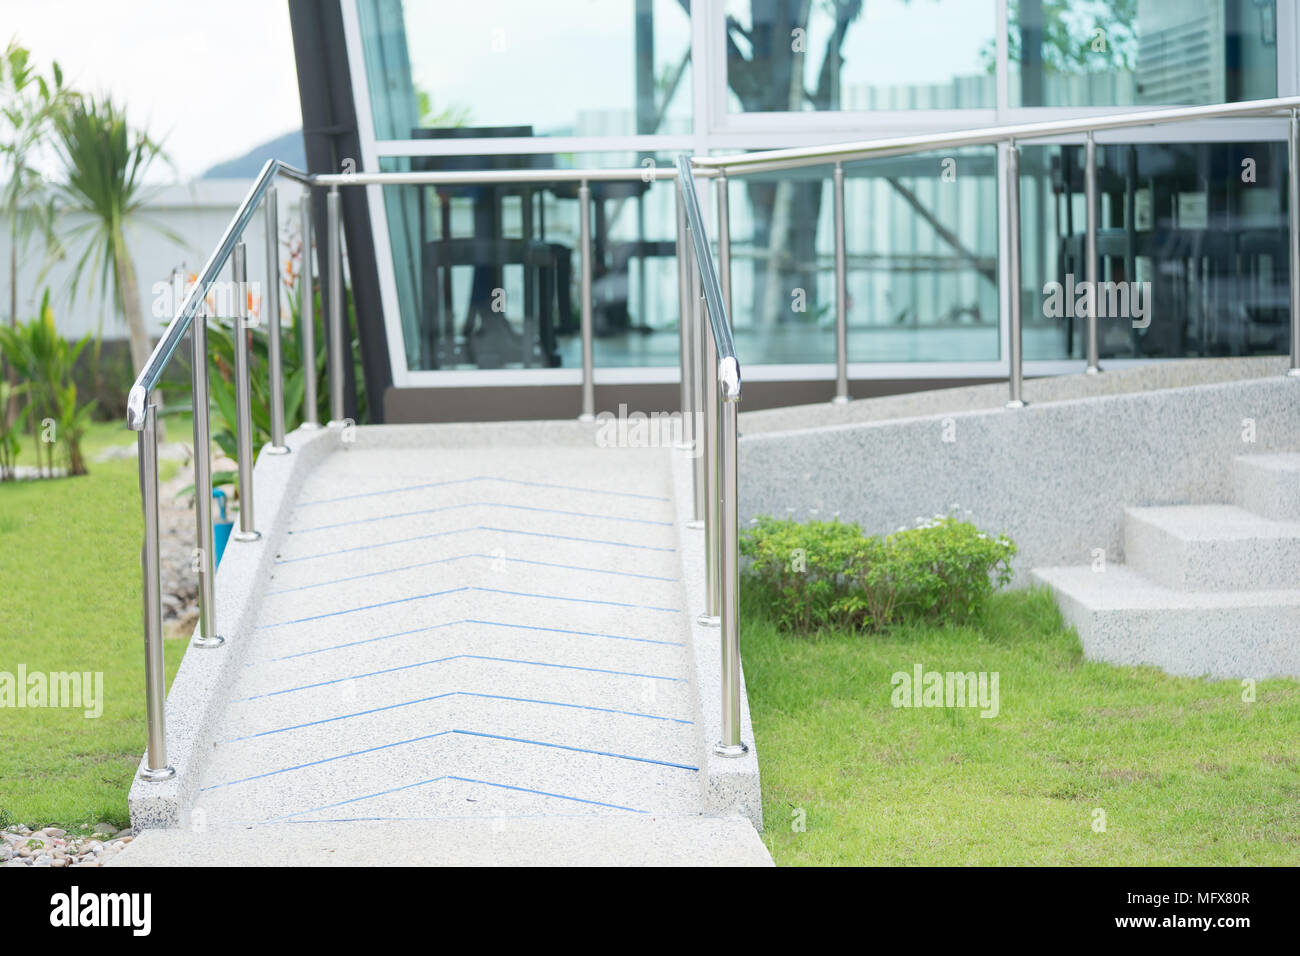 Ramp Way For Support Wheelchair Disabled People.Using Wheelchair Ramp  (Barrier Free Access).Selective Focus.